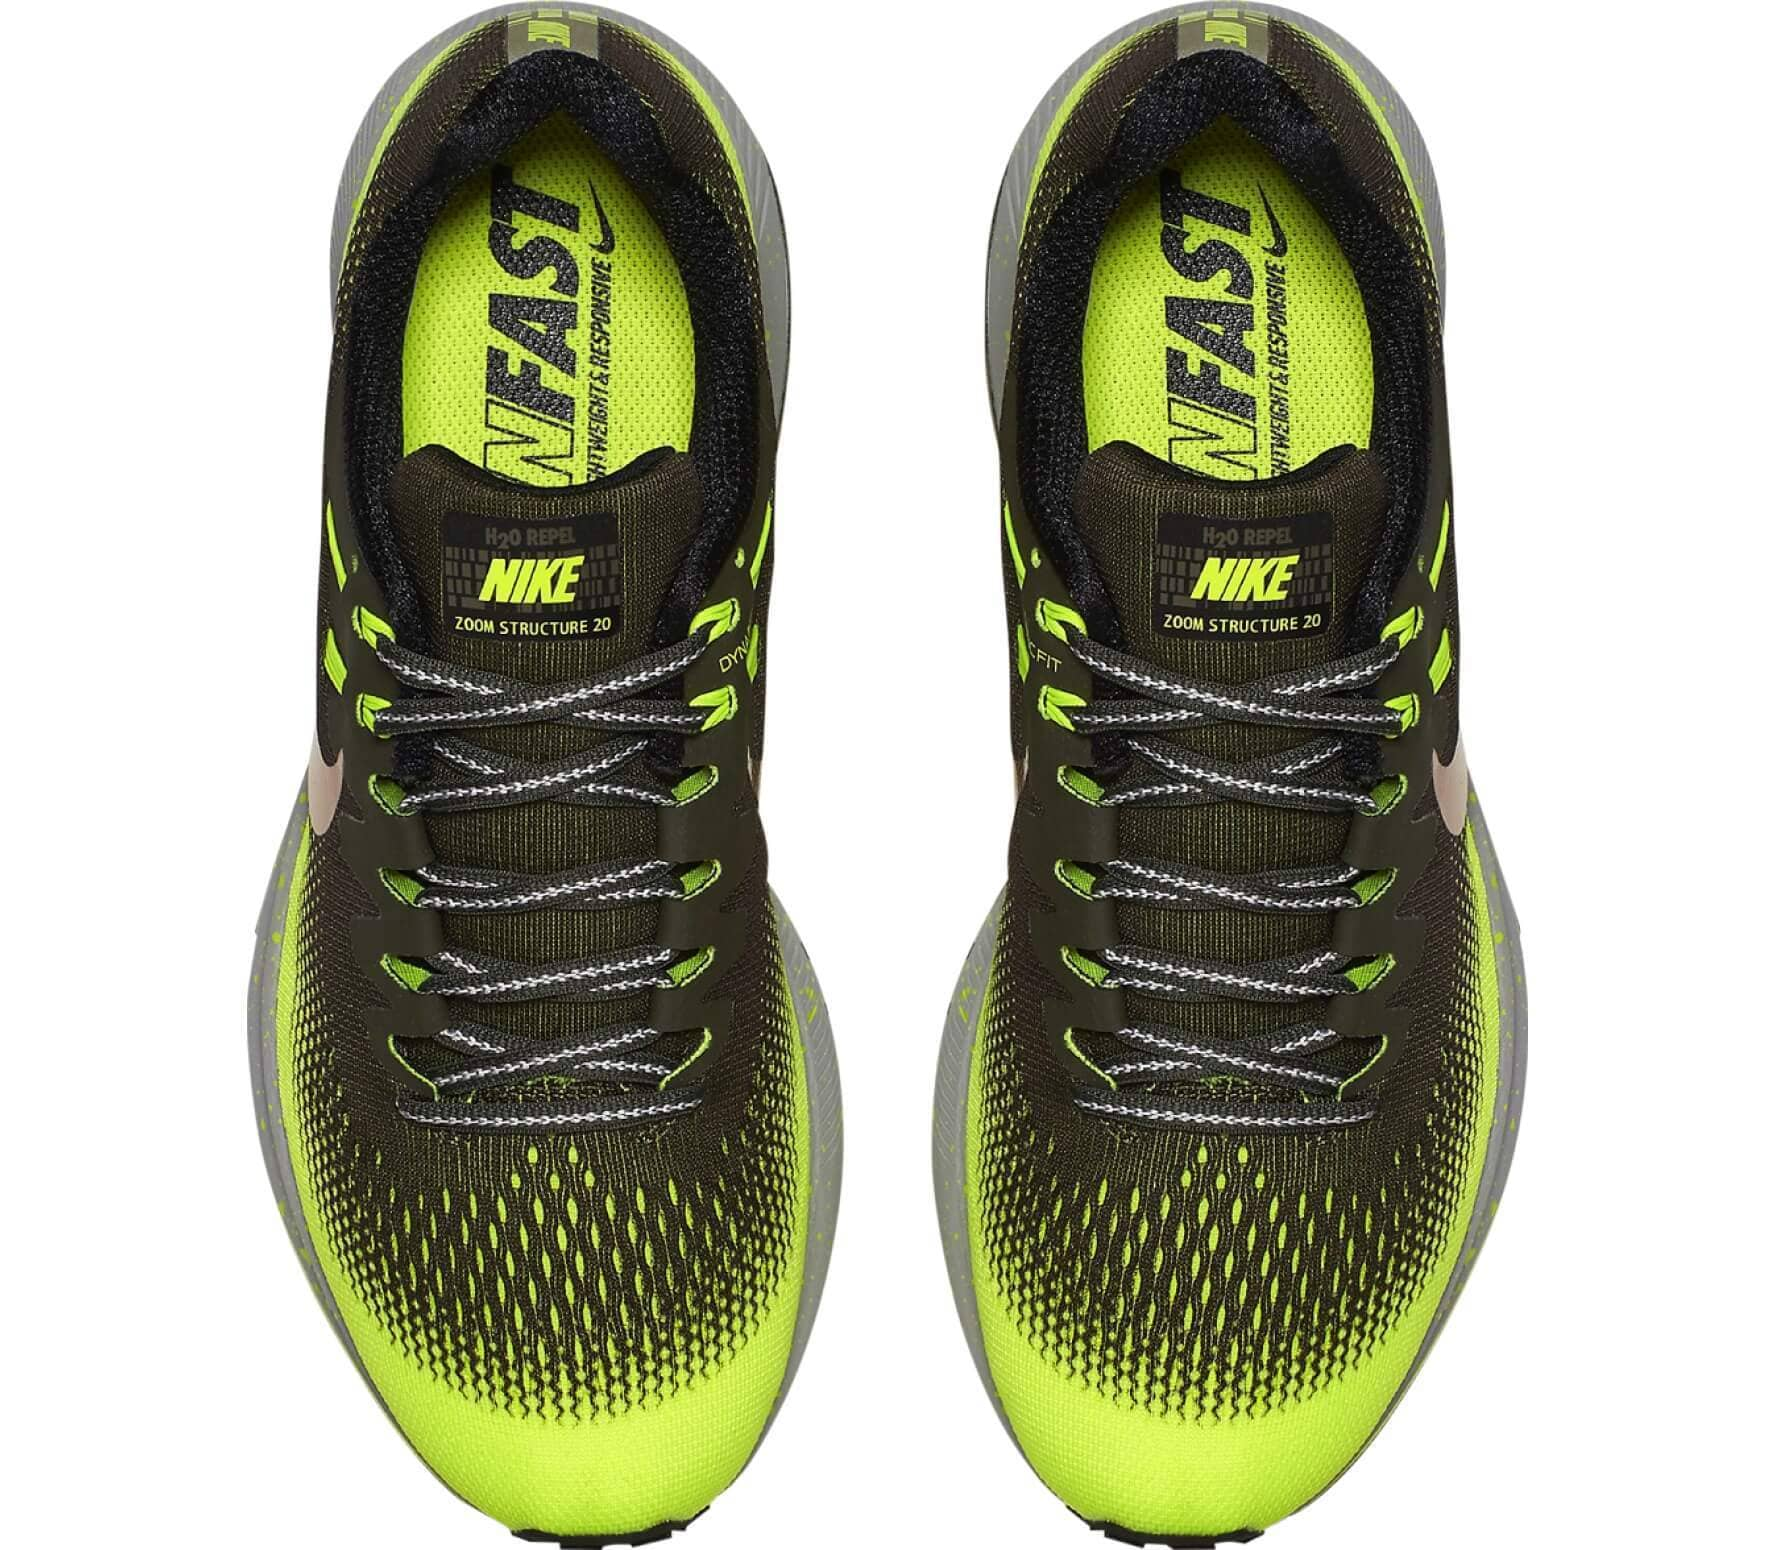 d34815924 ... netherlands nike air zoom structure 20 shield zapatillas de running  para hombre verde oscuro d110b 5d76a